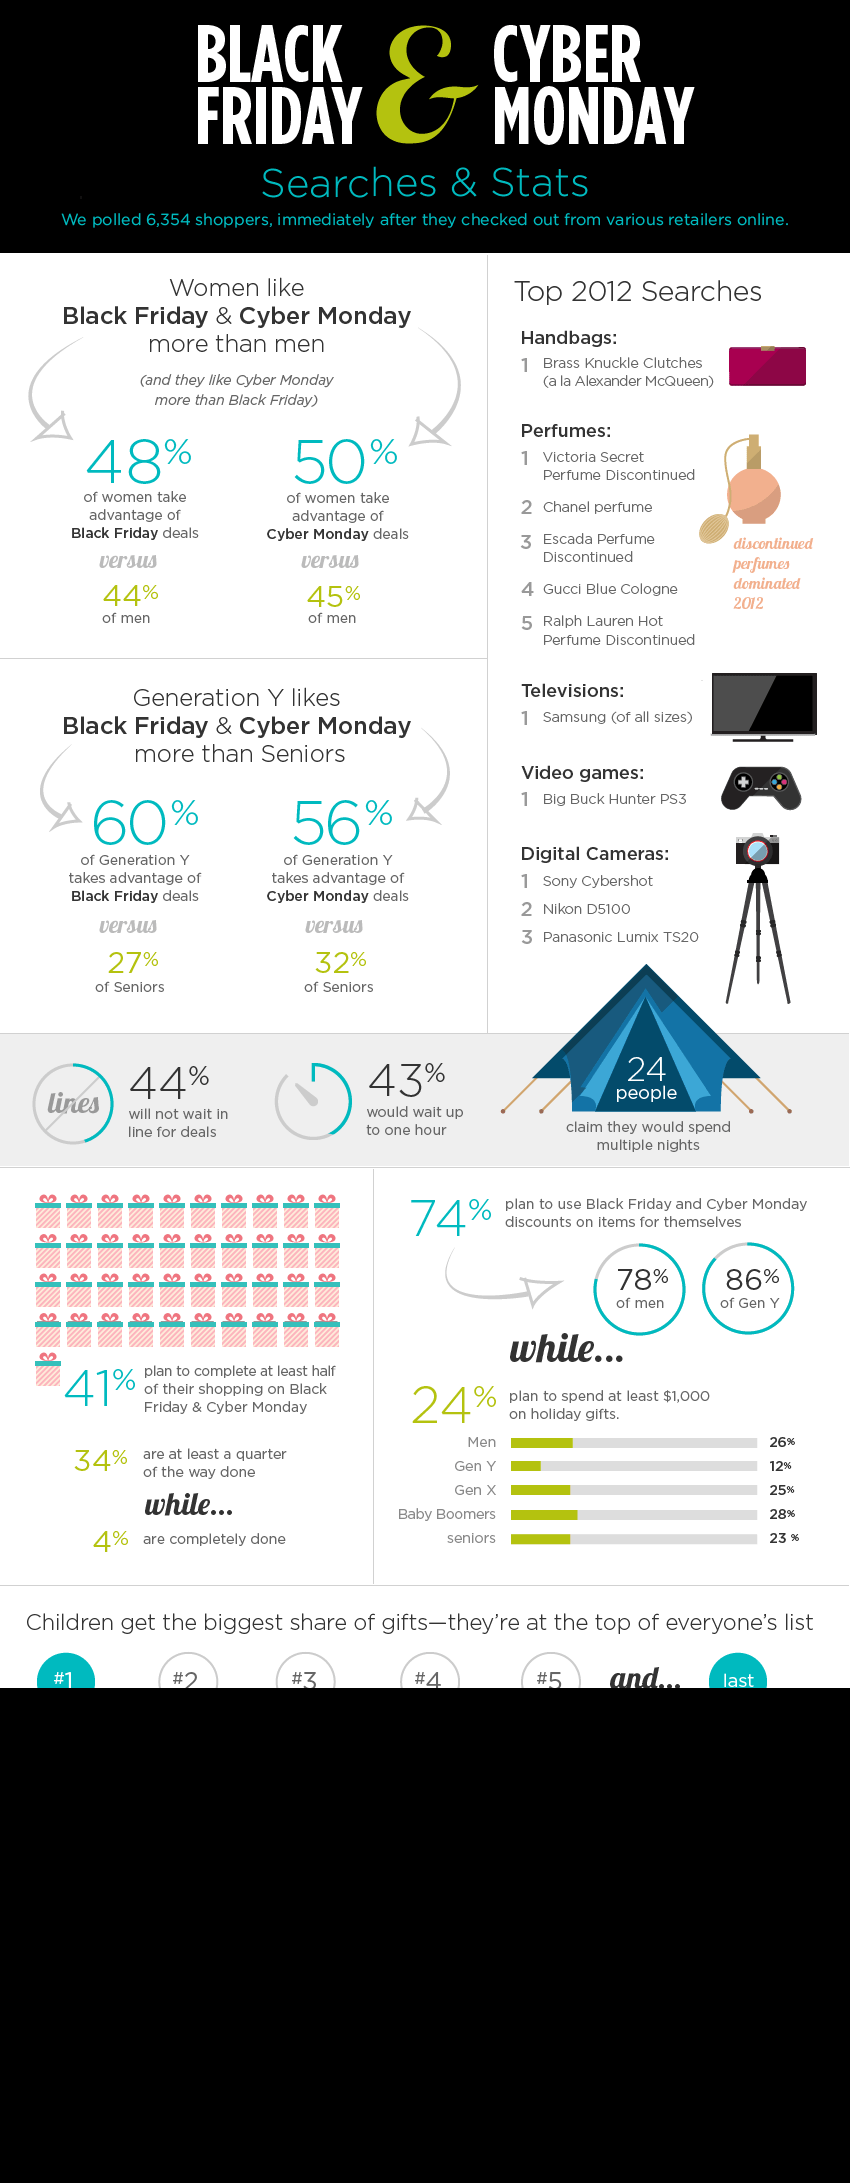 INFOGRAPHIC: The Black Friday & Cyber Monday Spending and Shopping Plans of Online Consumers